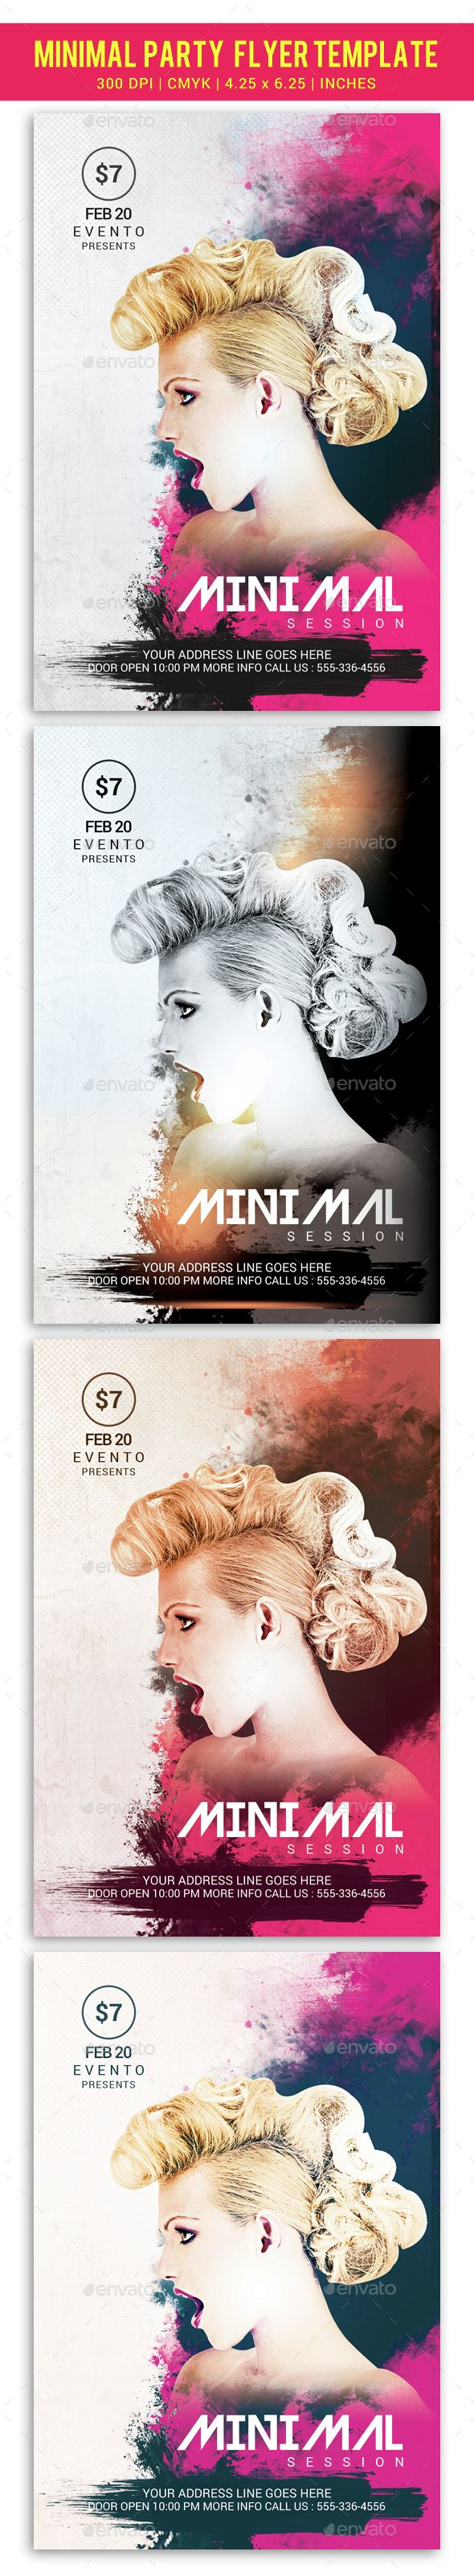 170 best Flyer Designs images on Pinterest | Editorial design ...